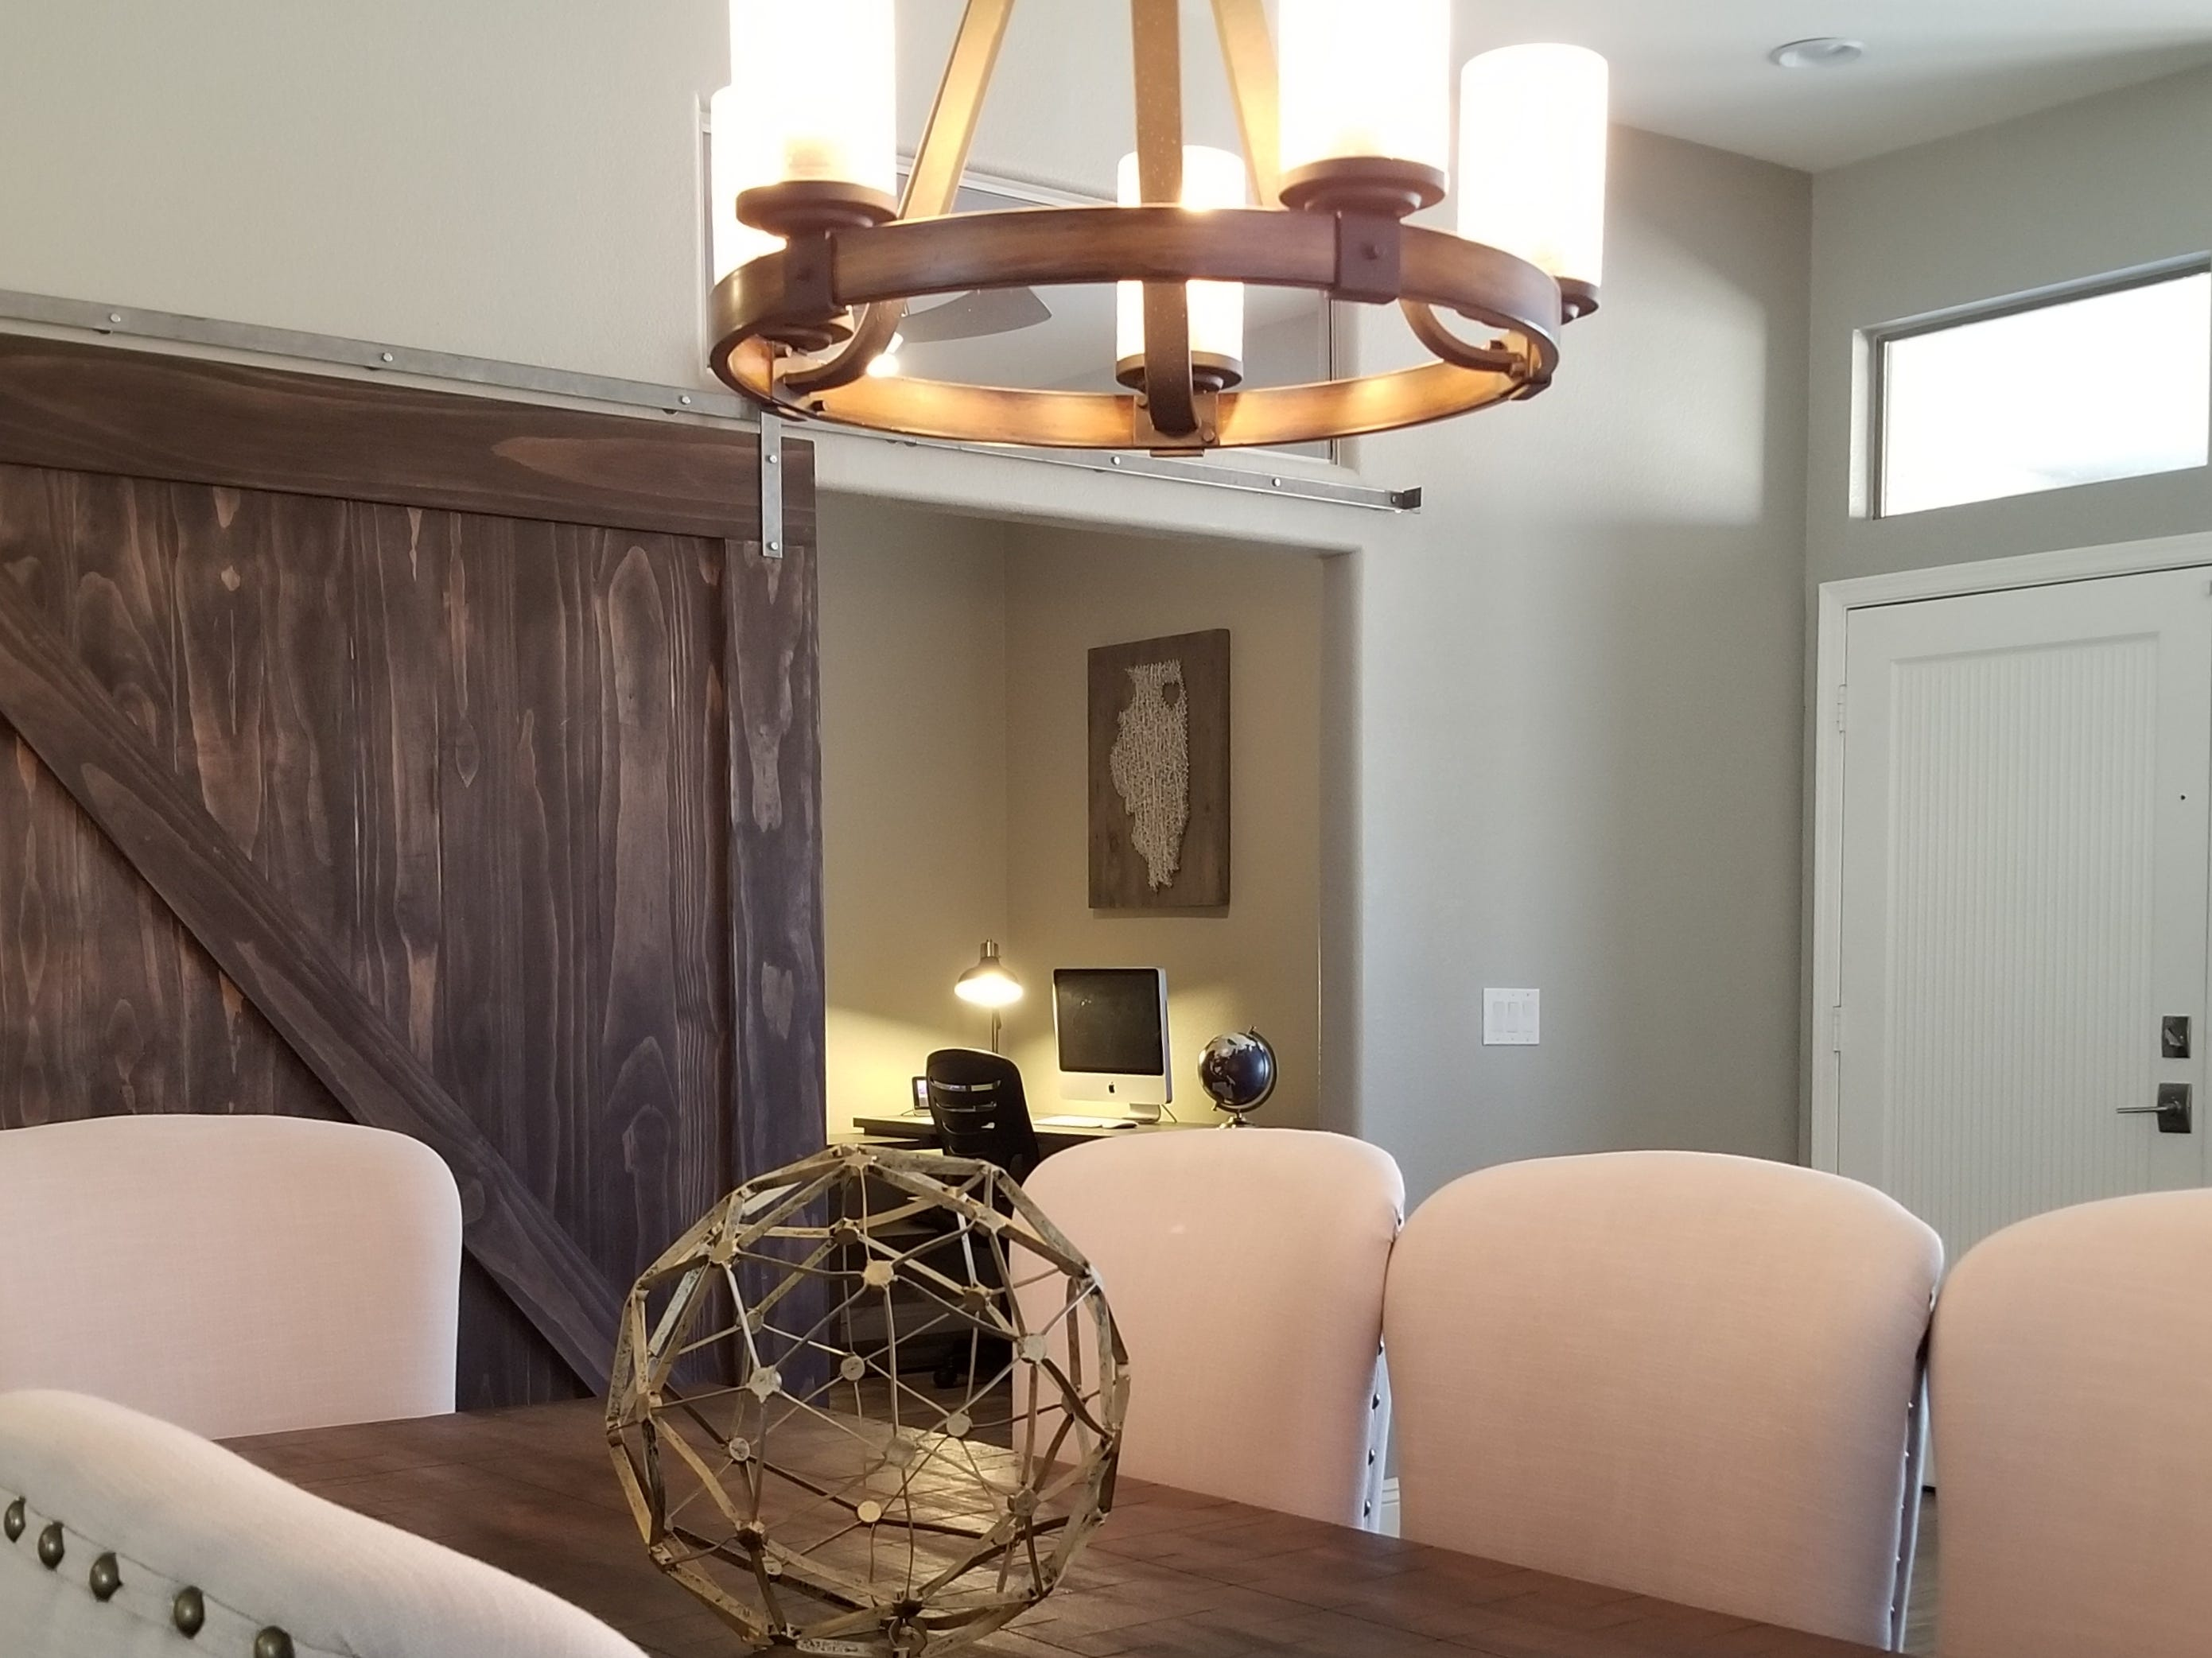 Staggered walnut plank flooring and gray-toned walls set the color palette for the home. Simple yet elegant furnishings complete the living and dining rooms. A bay window overlooking the porch area of the home filters light throughout both rooms.